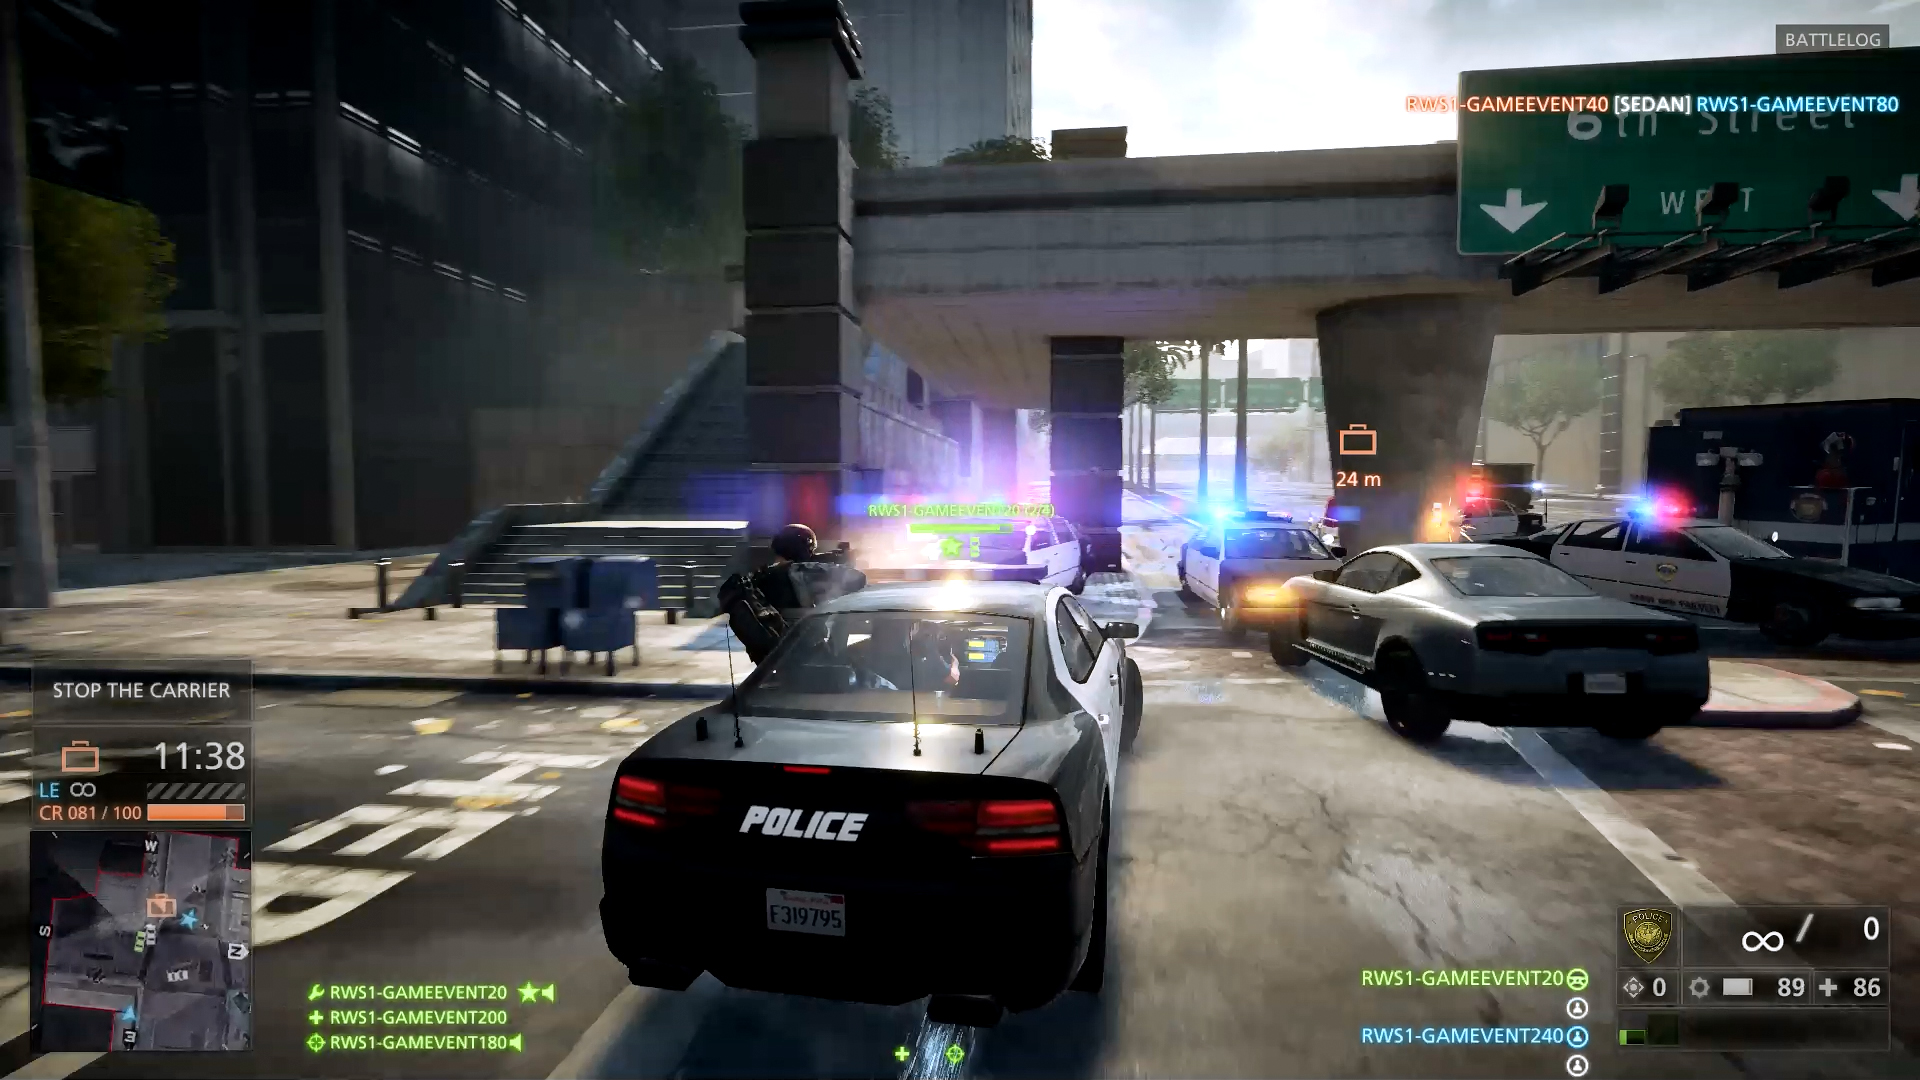 We found it by searching battlefield hardline beta in the